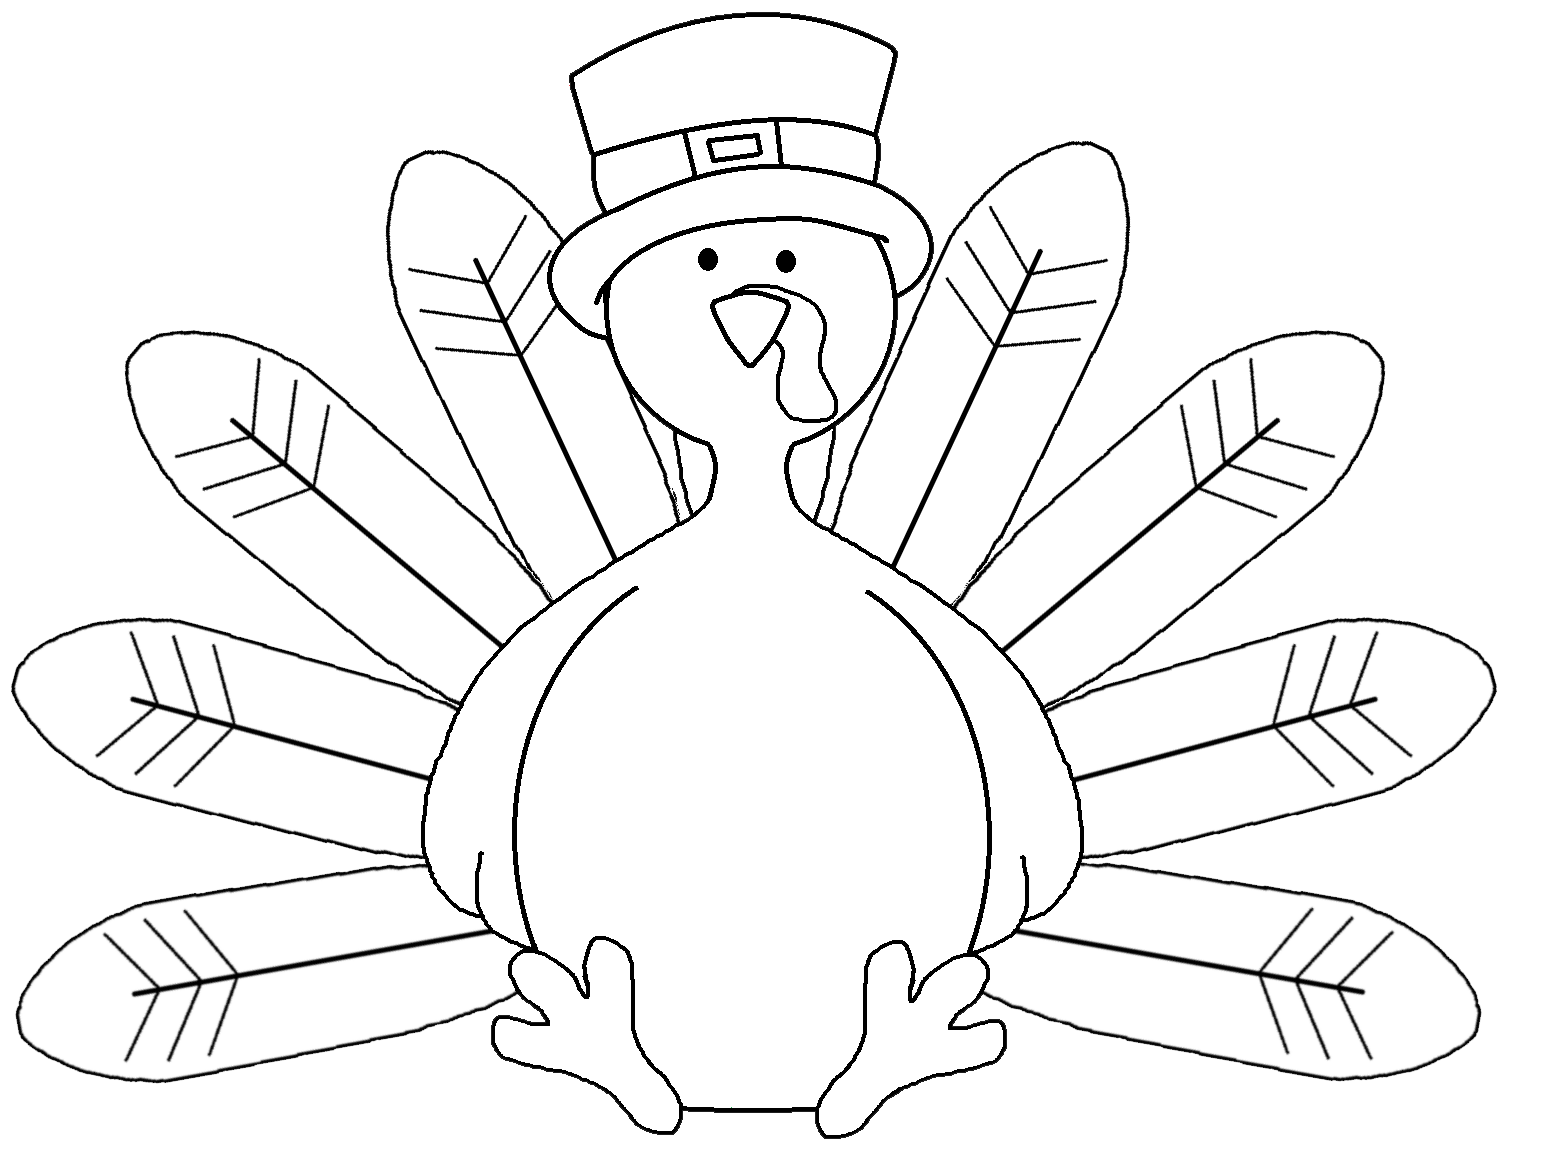 Turkey feathers clipart black & white image freeuse download 28+ Collection of Large Thanksgiving Turkey Clipart | High quality ... image freeuse download